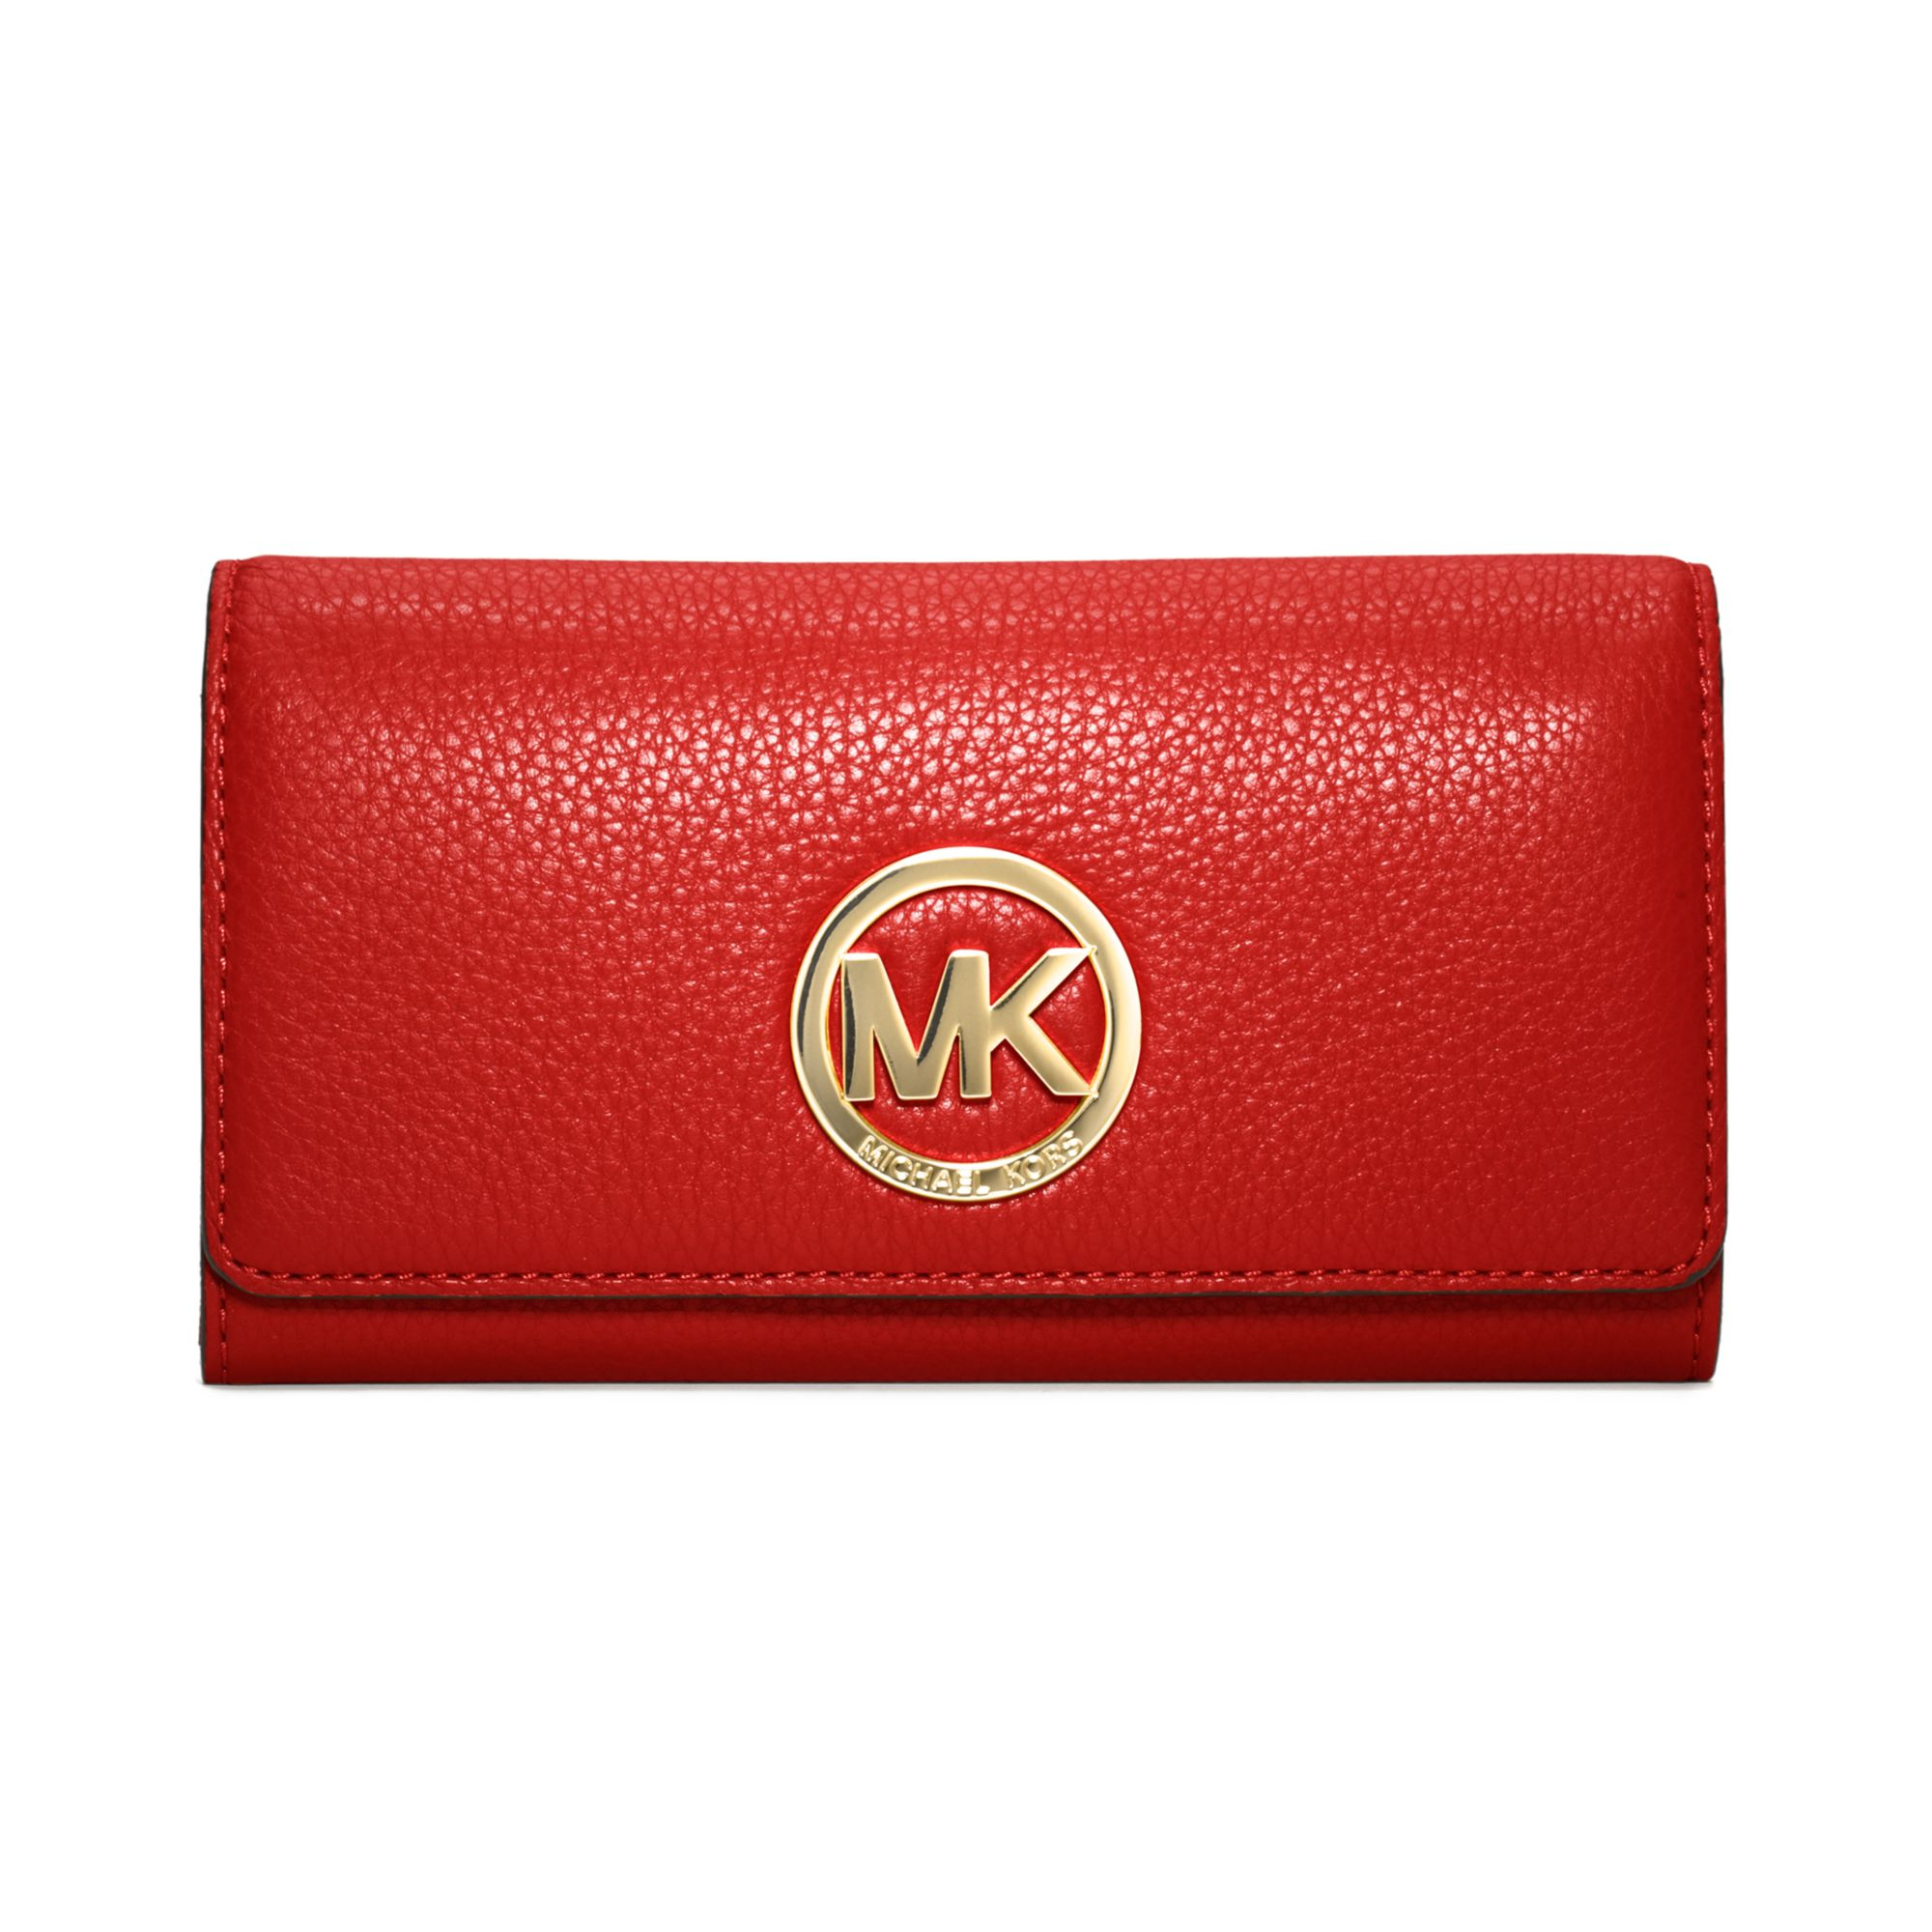 06b2b05685d8 Gallery. Previously sold at: Macy's · Women's Michael By Michael Kors Fulton